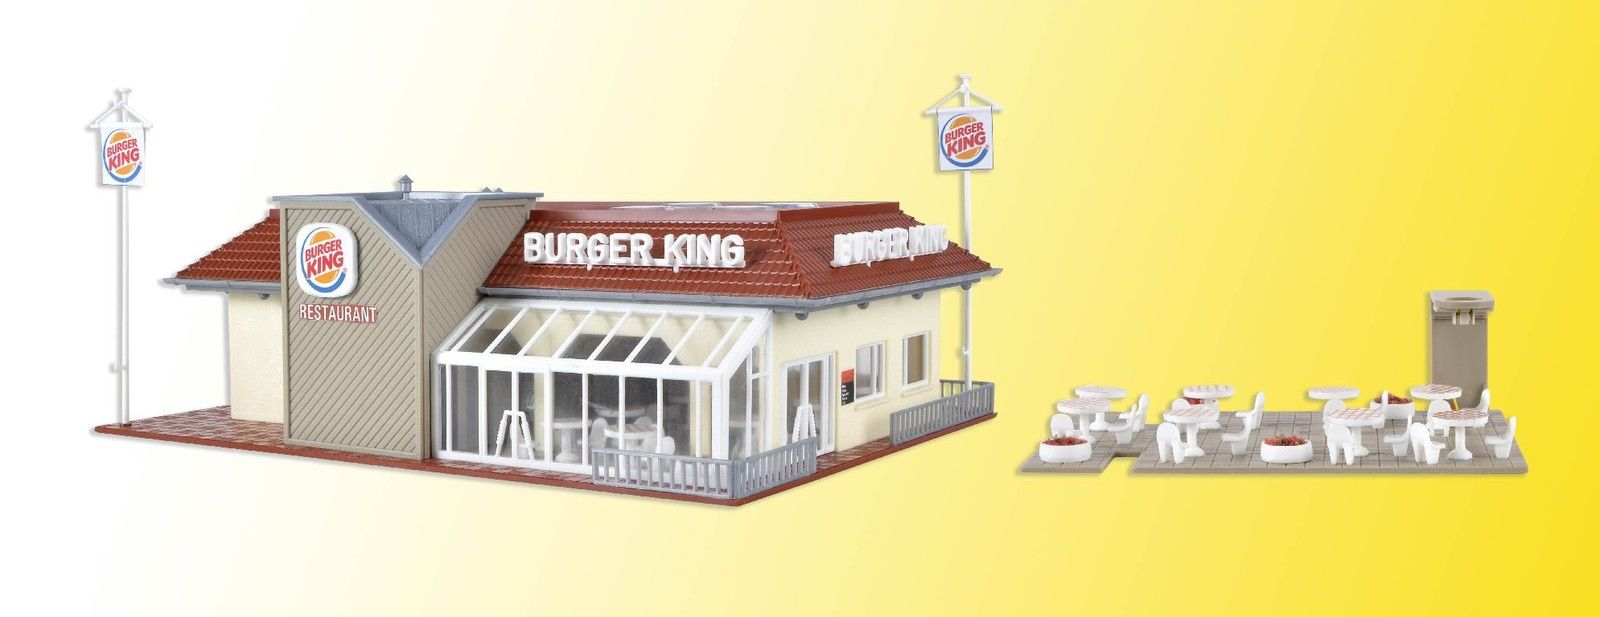 43632 Vollmer HO Ristorante Burger King scala 1:87 con kit illuminazione a led